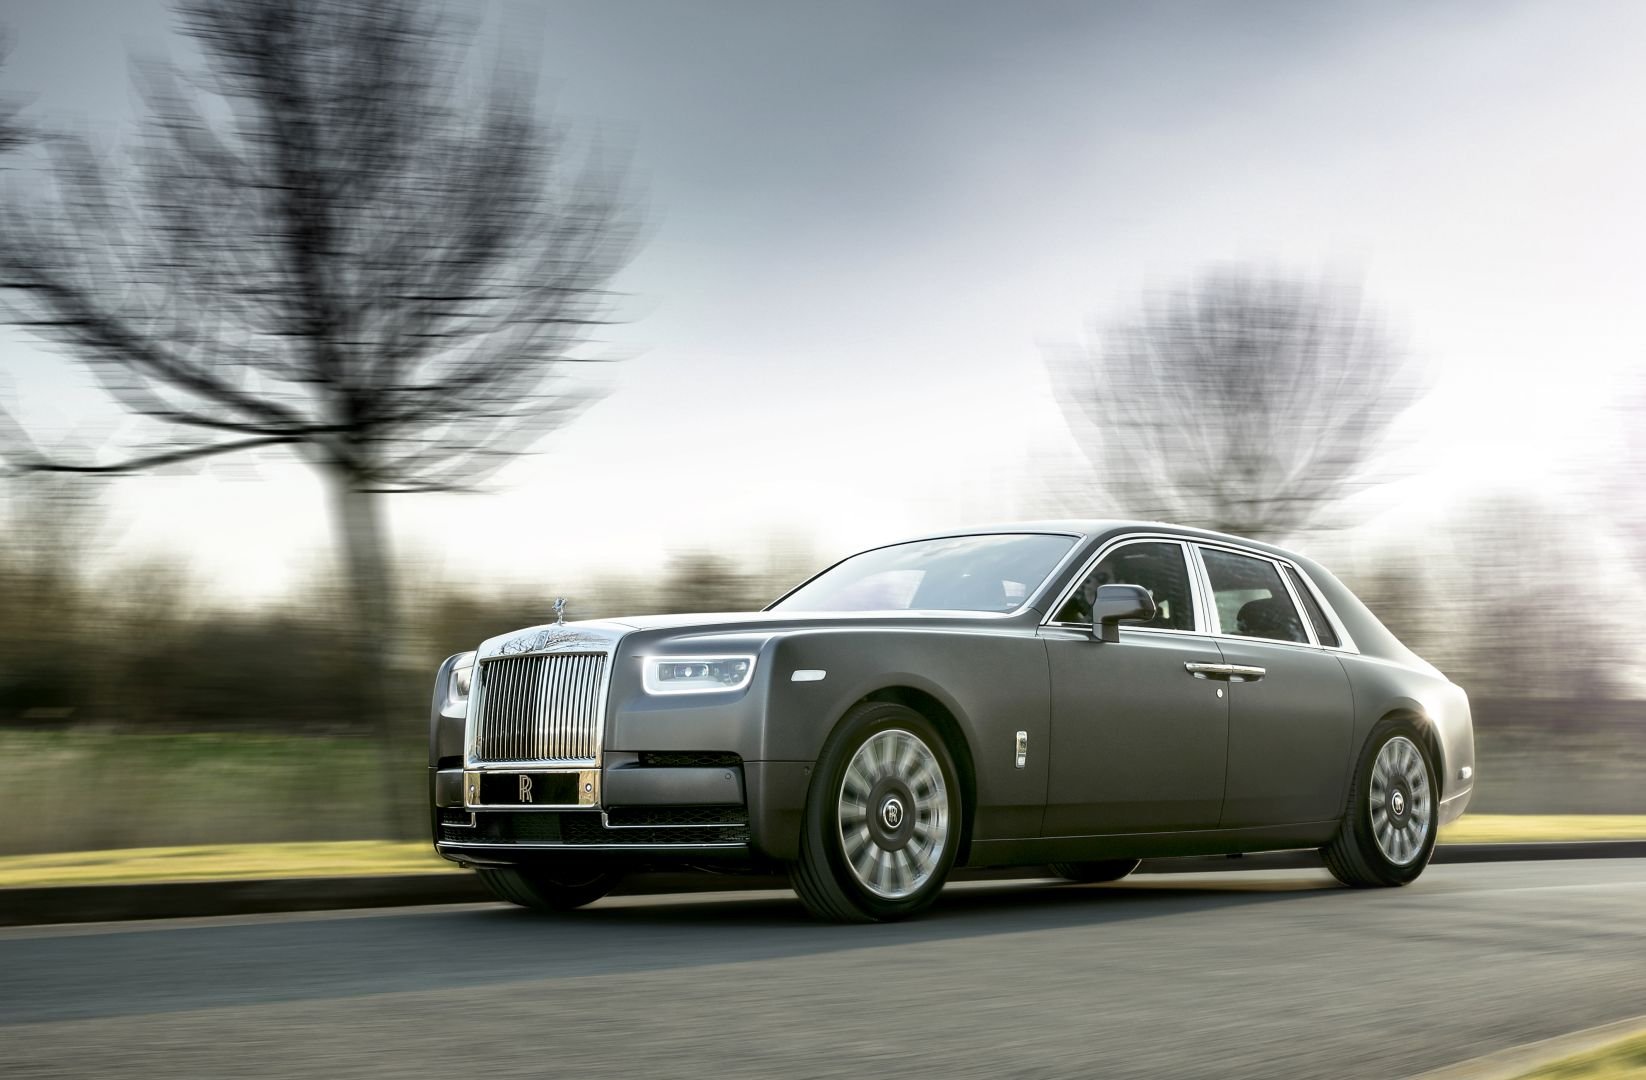 Rolls Royce Phantom Gentlemans Tourer 5